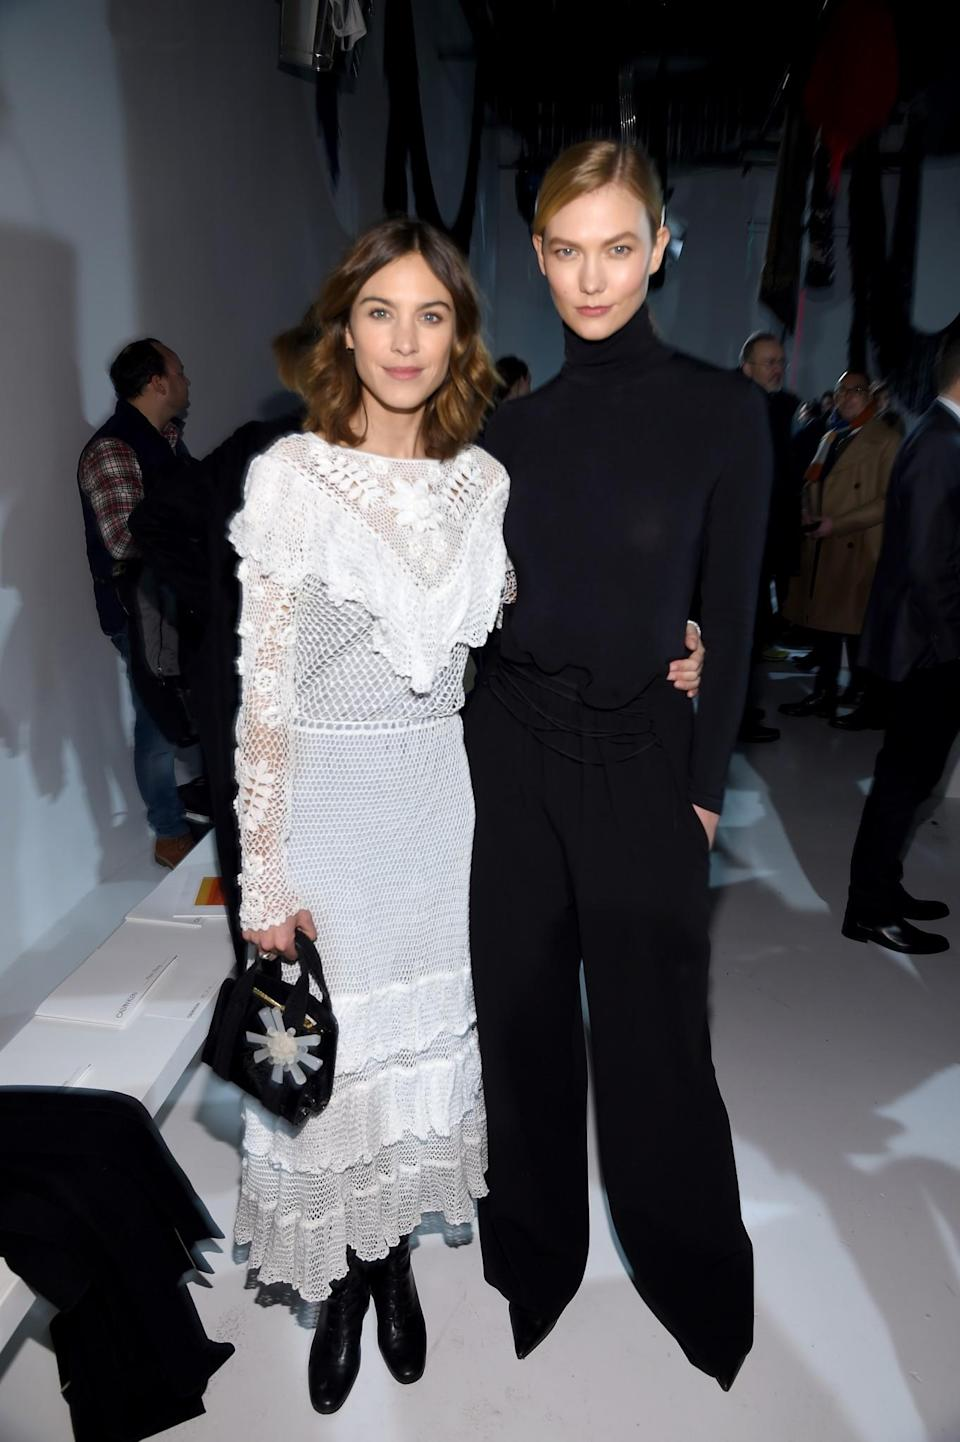 <p>Alexa Chung and Karlie Kloss were the complete opposite with Alexa dressed in a white crochet dress and Karlie wearing a sleek black look. <i>[Photo: Getty]</i> </p>